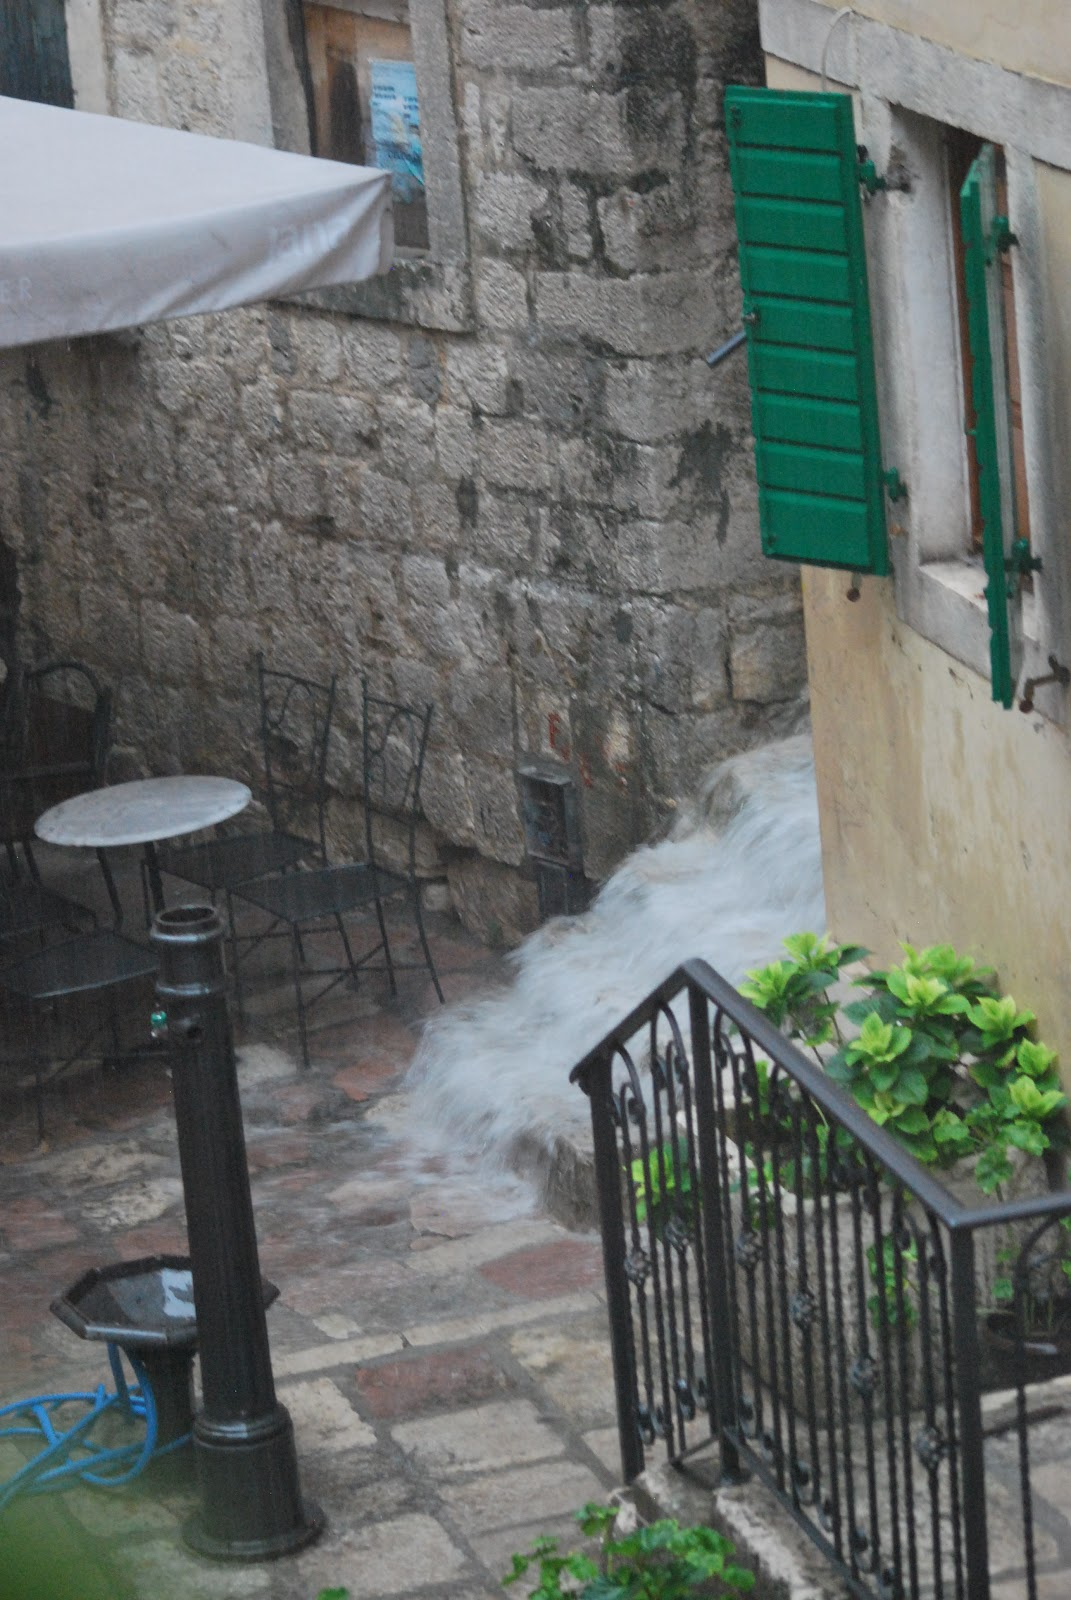 The rain has little place to go in the fortified city, making venturing out during a storm nearly impossible